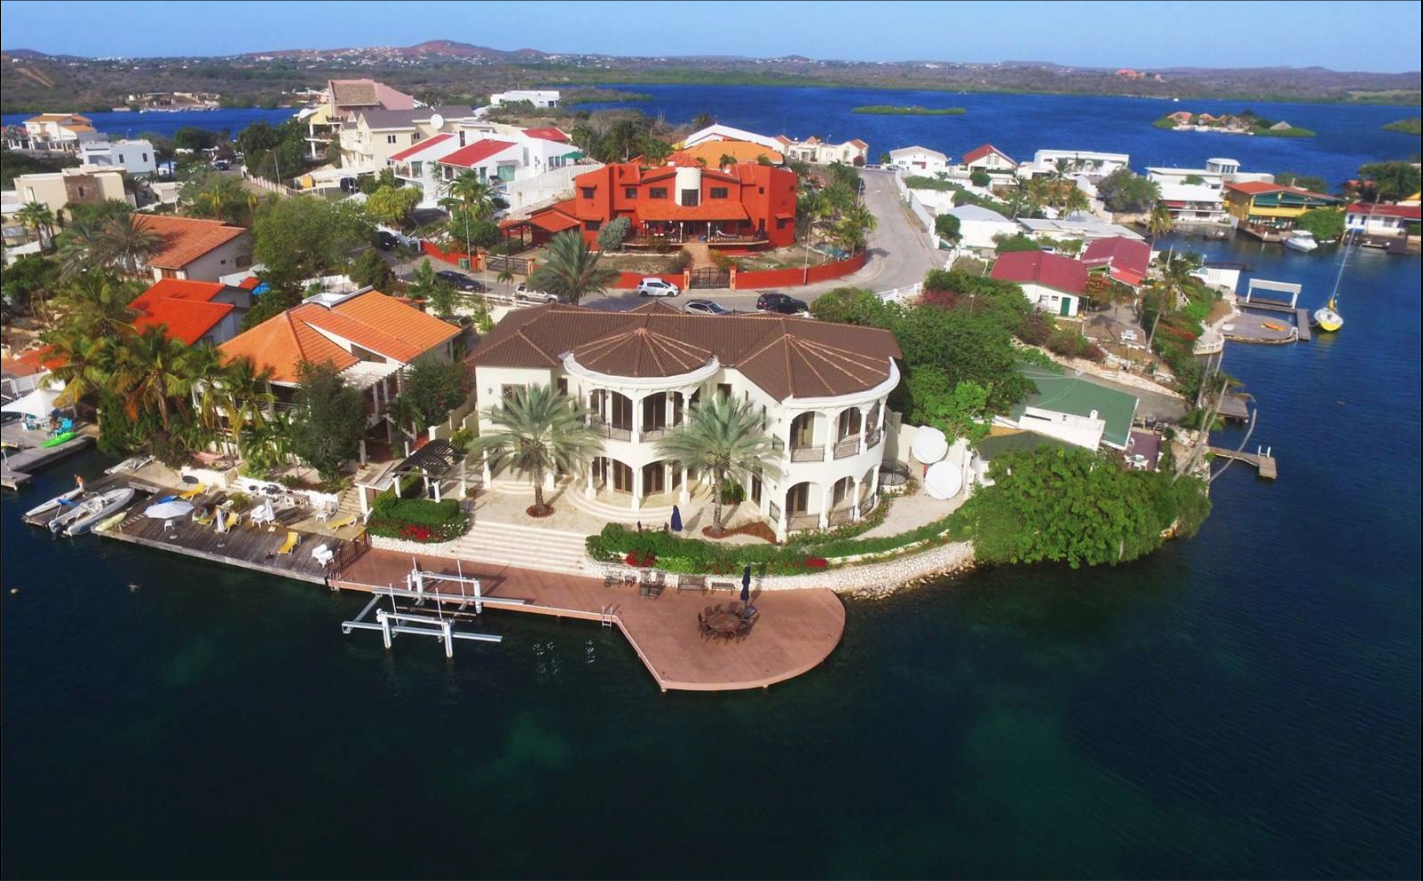 $3,700,000  Jan Sofat Waterfront Villa 224 Willemstad South, Curaçao 4 beds | 7 baths | 7203 square feet    View More